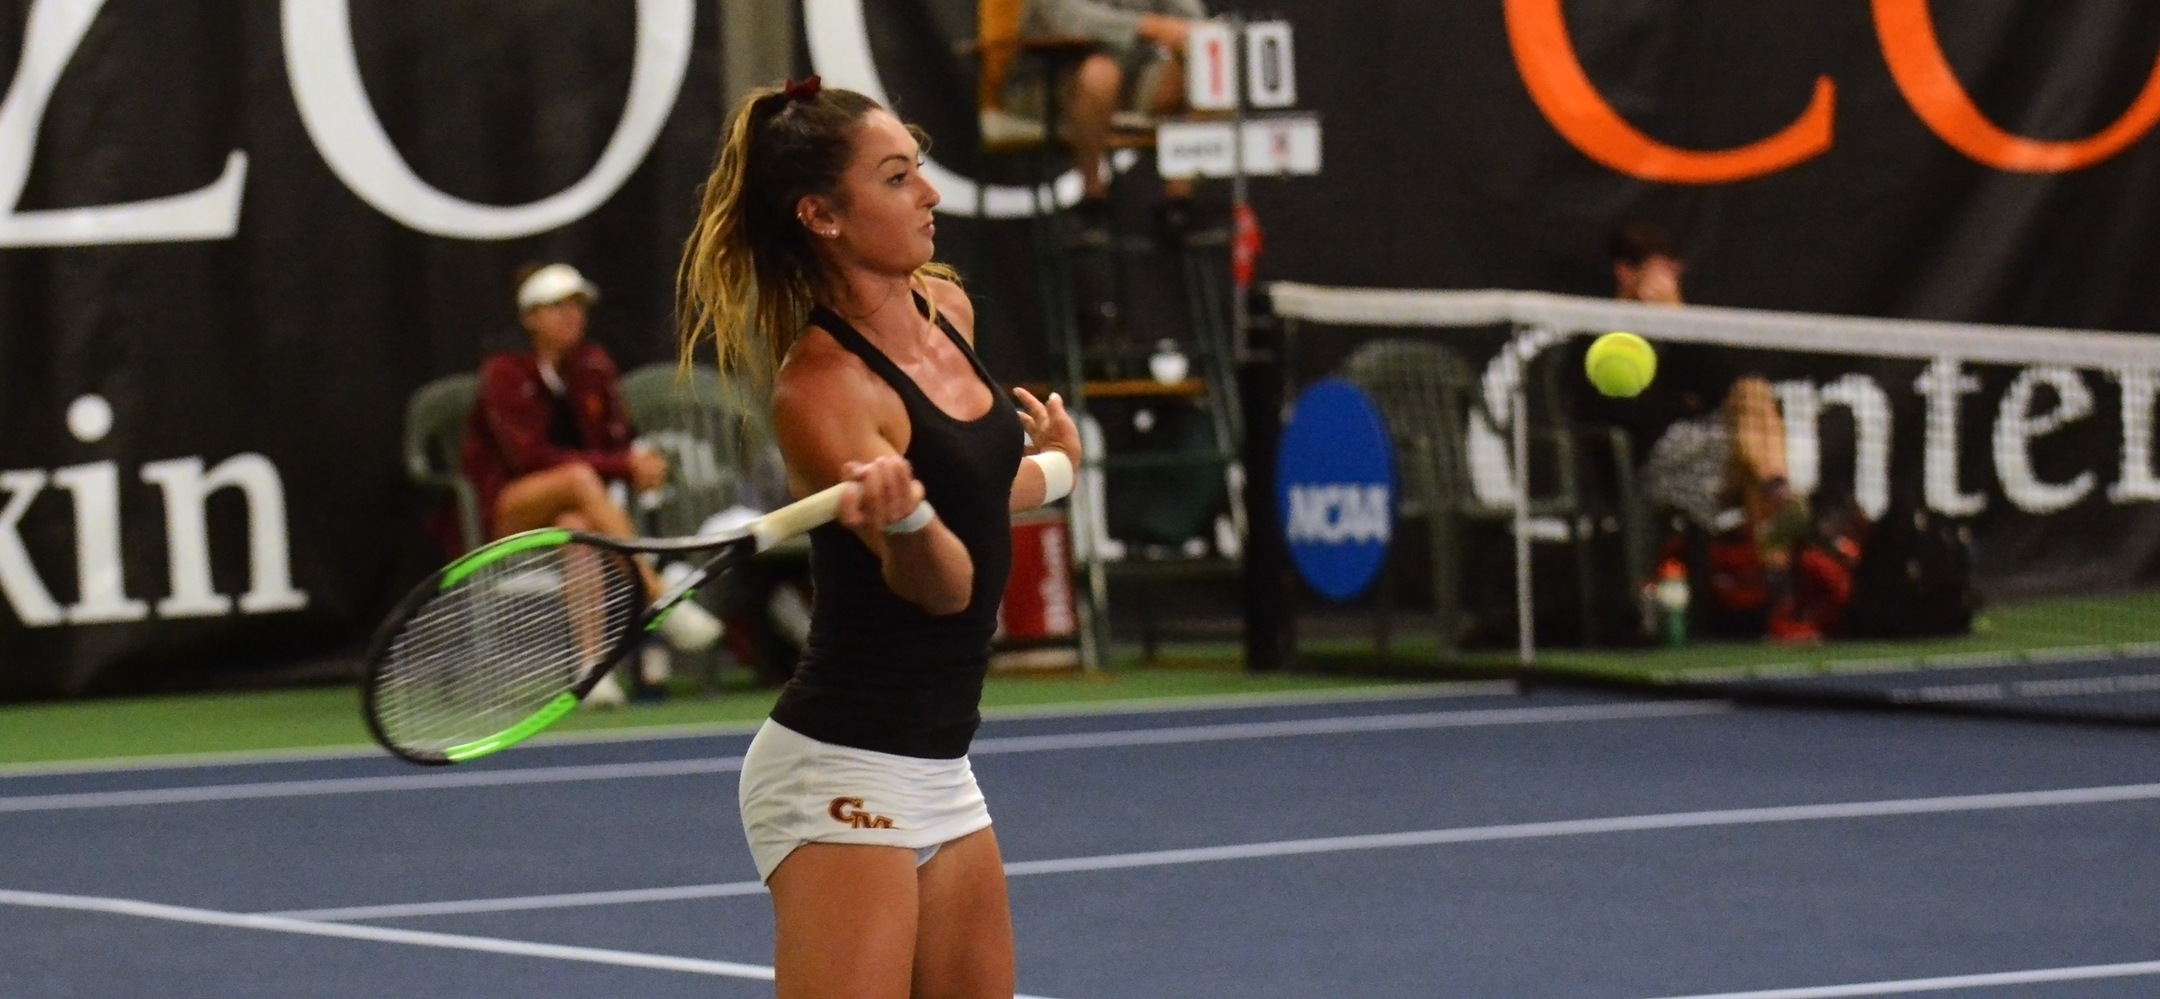 Allen Reaches NCAA Quarterfinals in Singles and Doubles, Both Women's Tennis Doubles Teams Advance